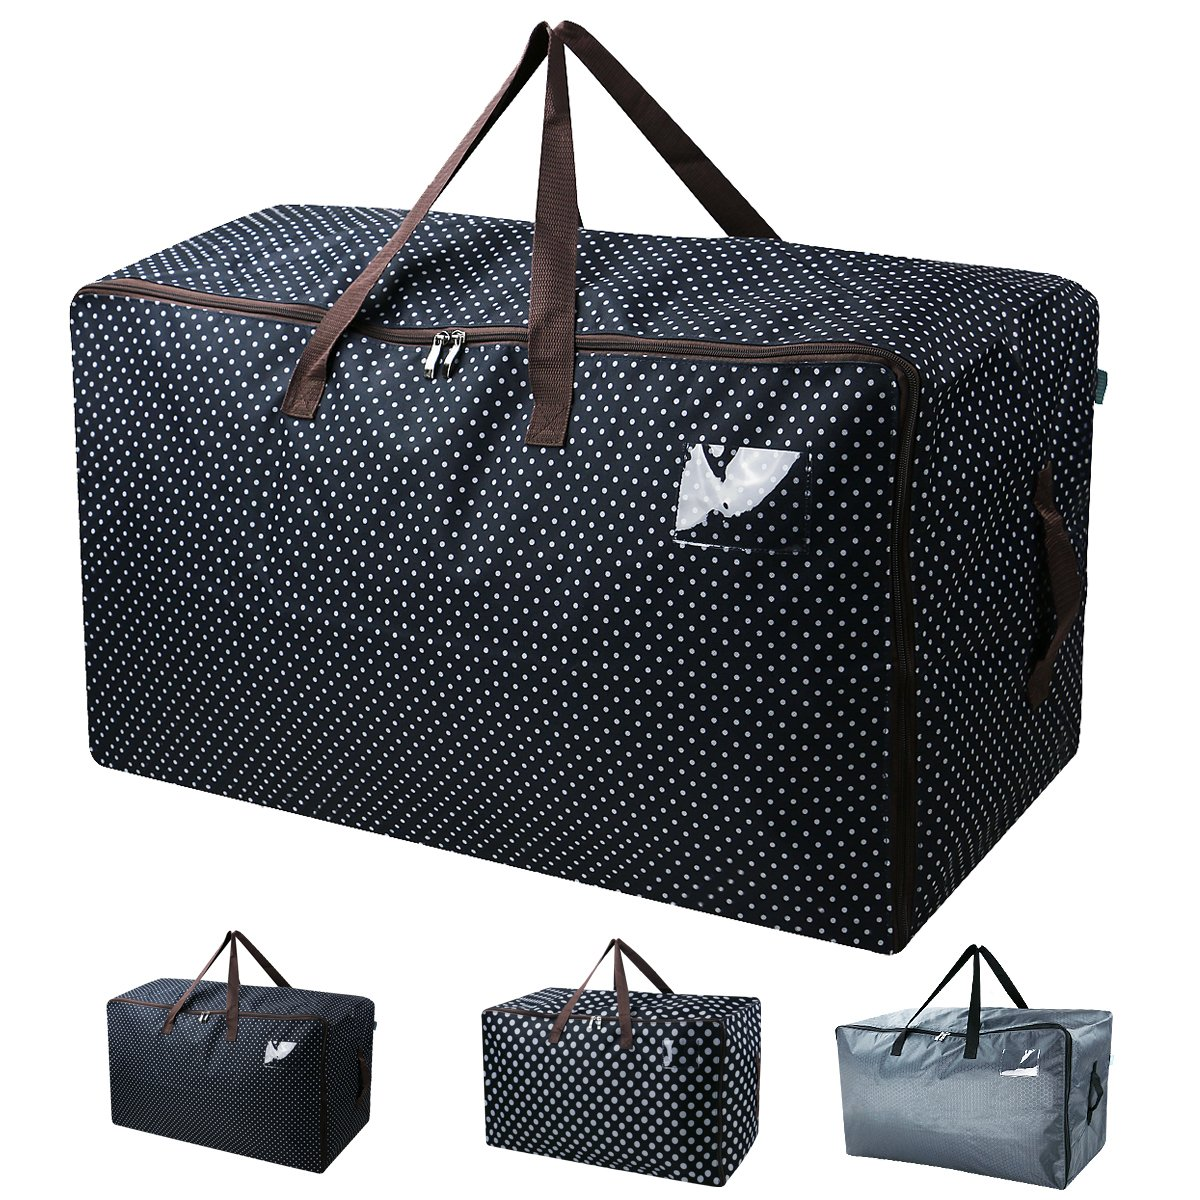 Waterproof Thick Over-sized Organizer Storage Bag with Strong Handles, Travelling Bag, College Carrying Bag, Camping Bag for Christmas, Festival Decorations, Washable (27.516.513.8'', Black Dot) by iwill CREATE PRO